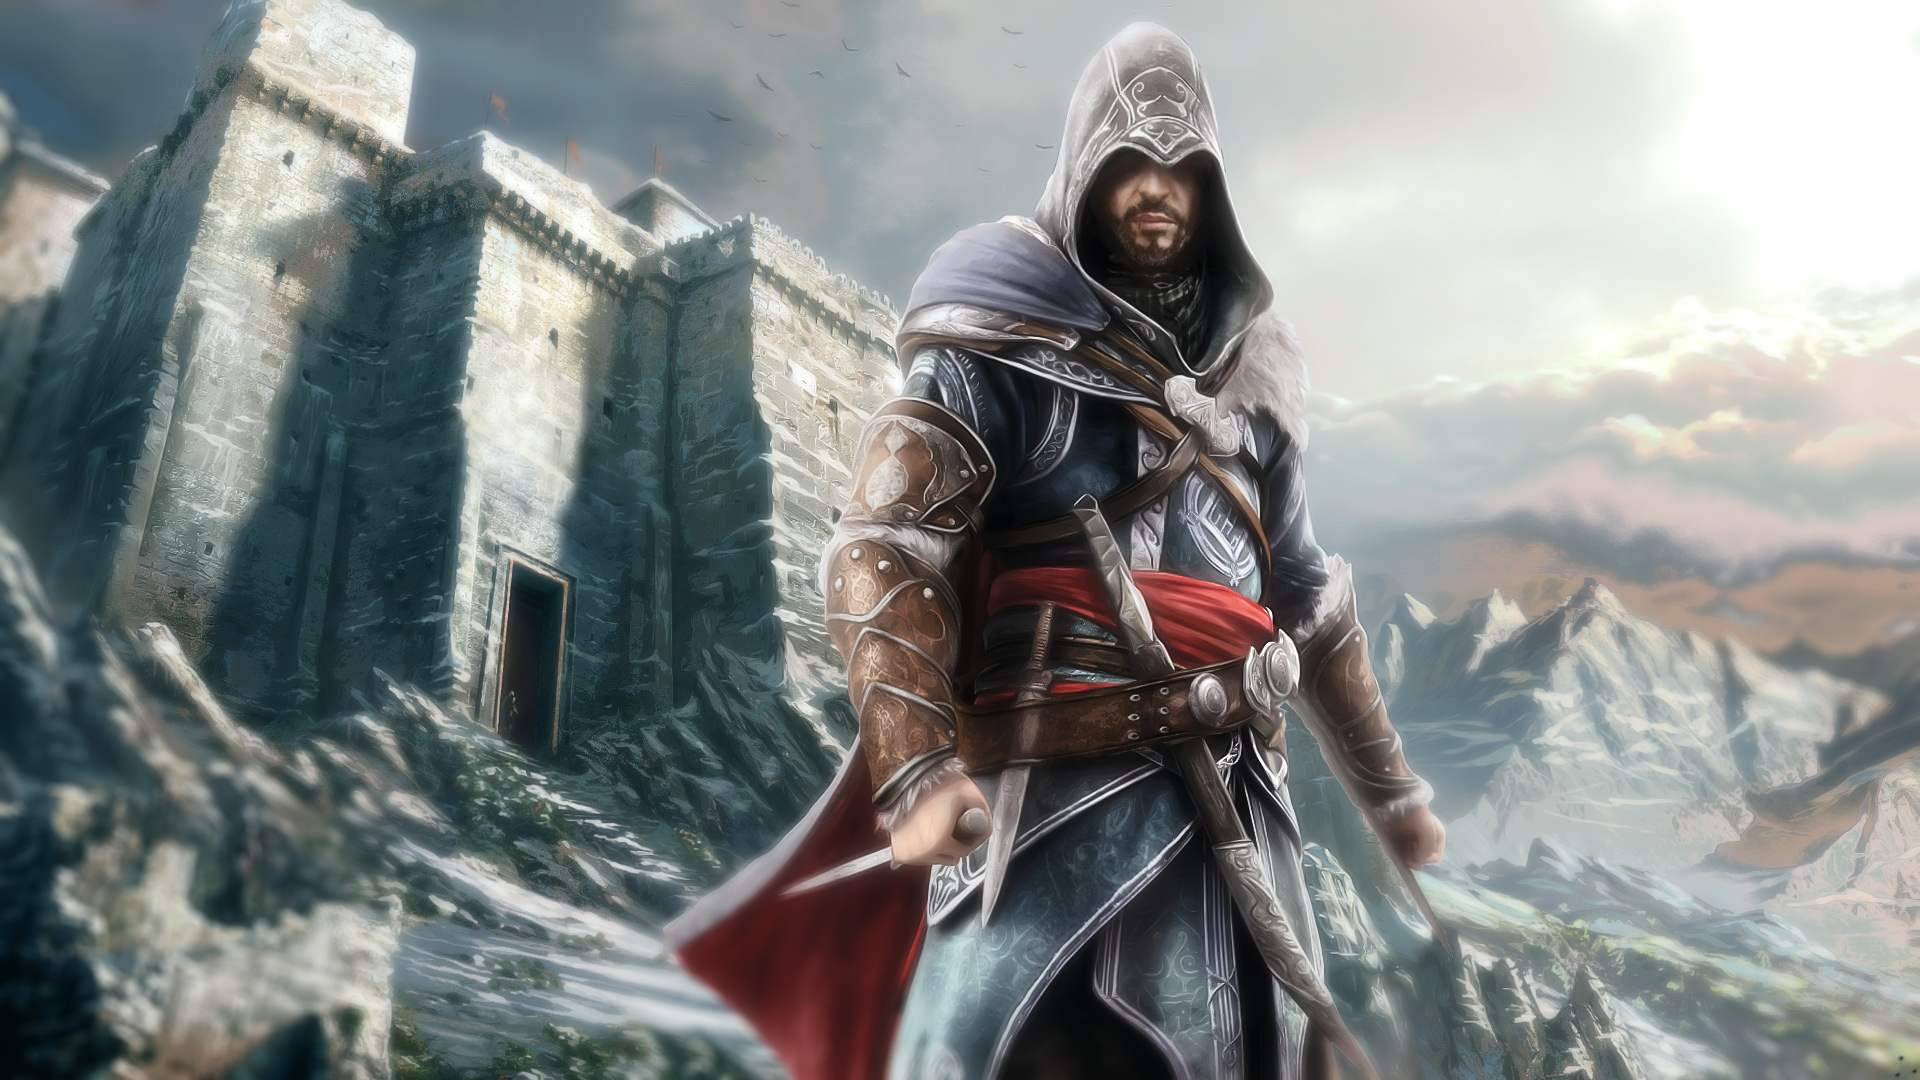 Ezio Assassins Creed Revelations Wallpapers Best Wallpapers Fan 1920x1080